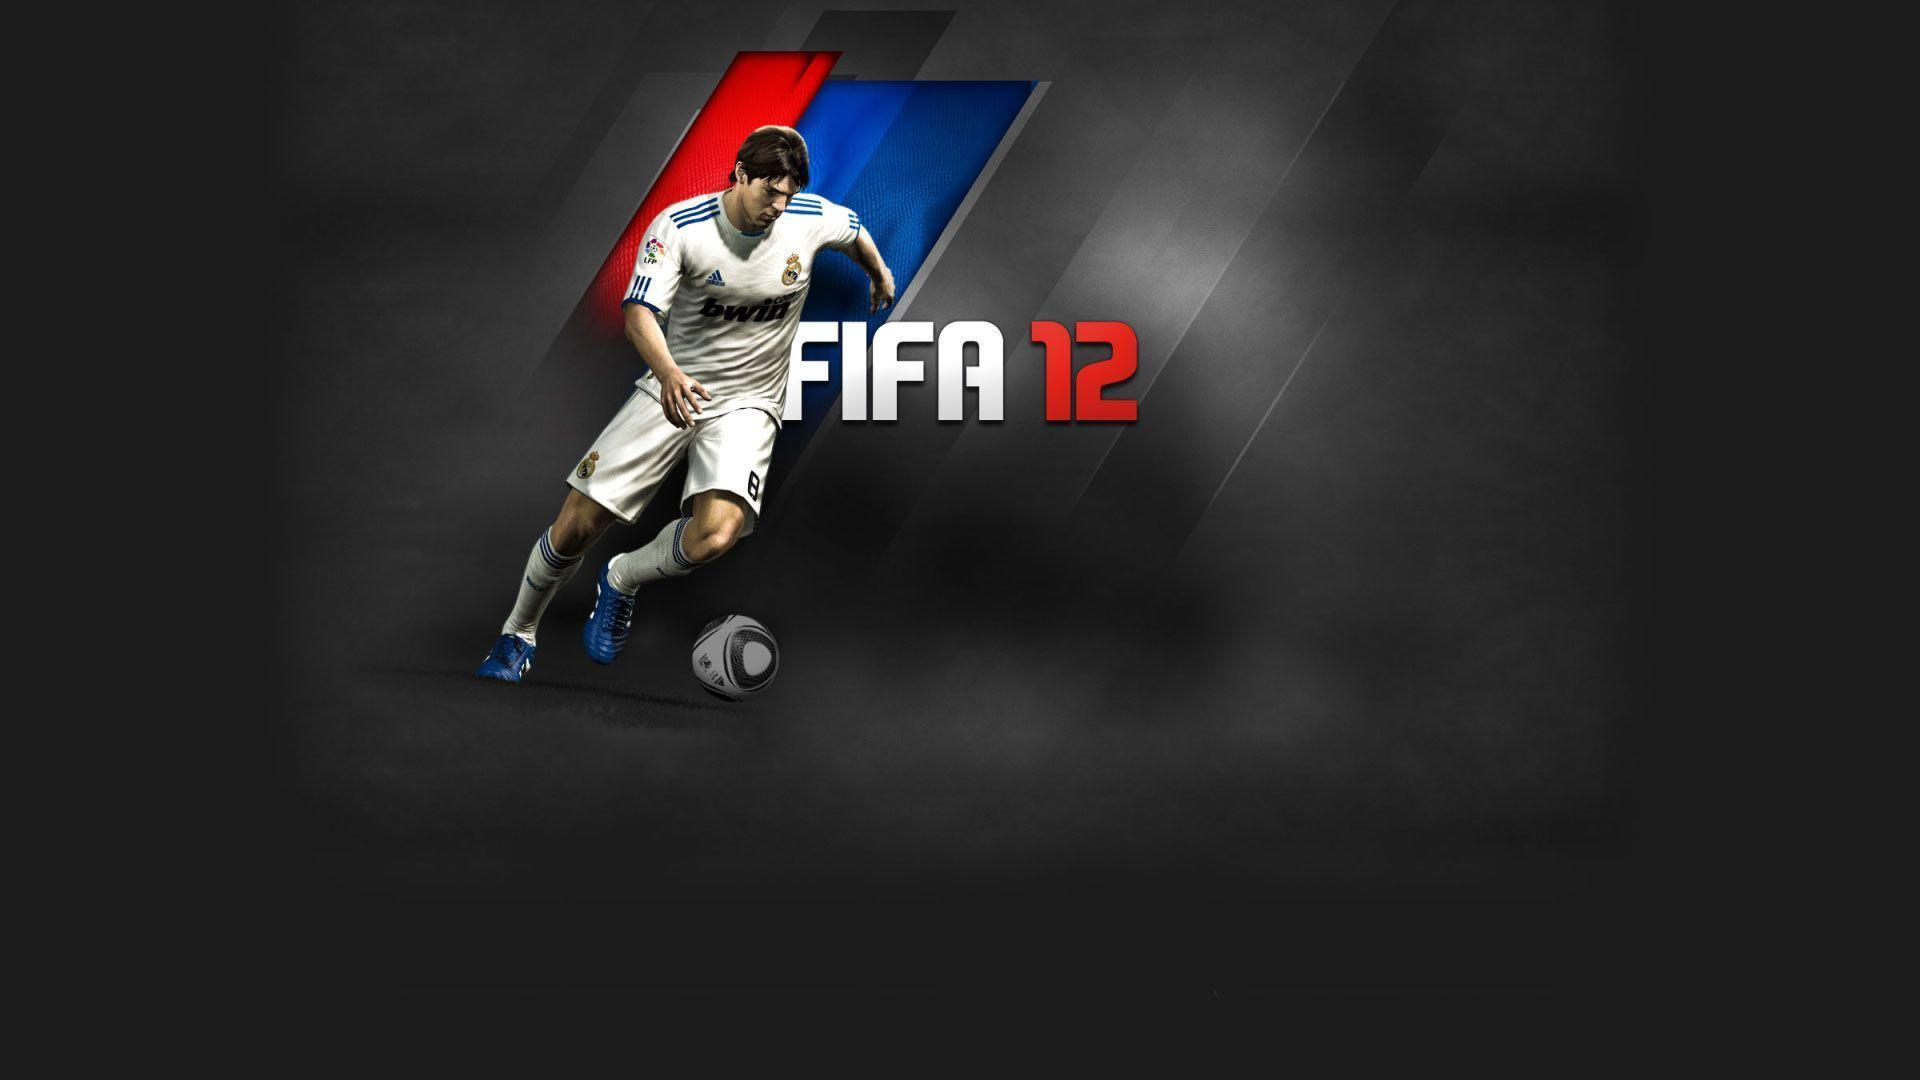 FIFA 12 Wallpapers - Gaming Now